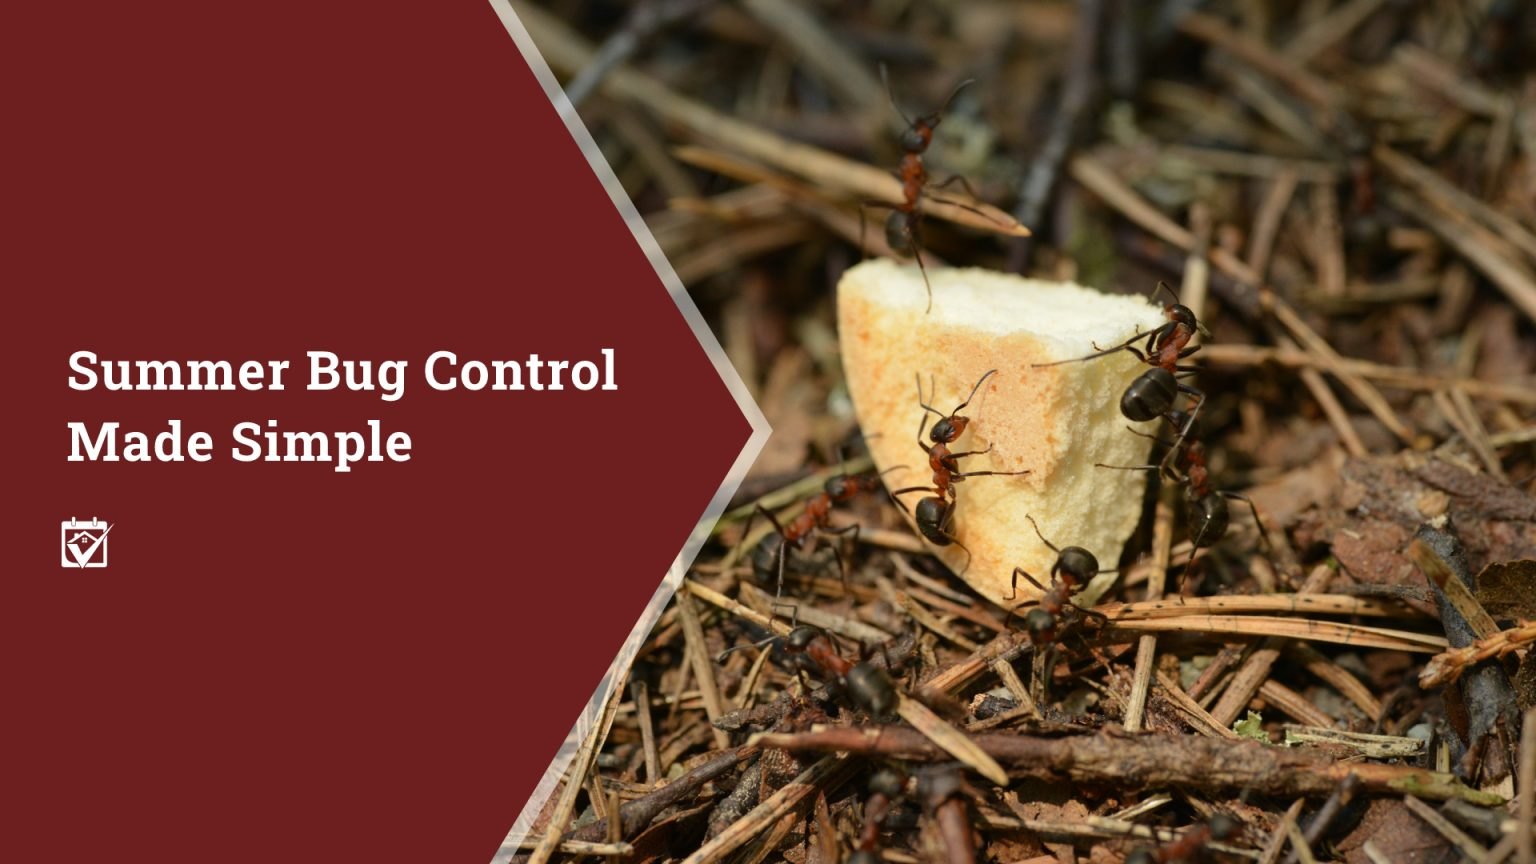 Summer Bug Control Made Simple